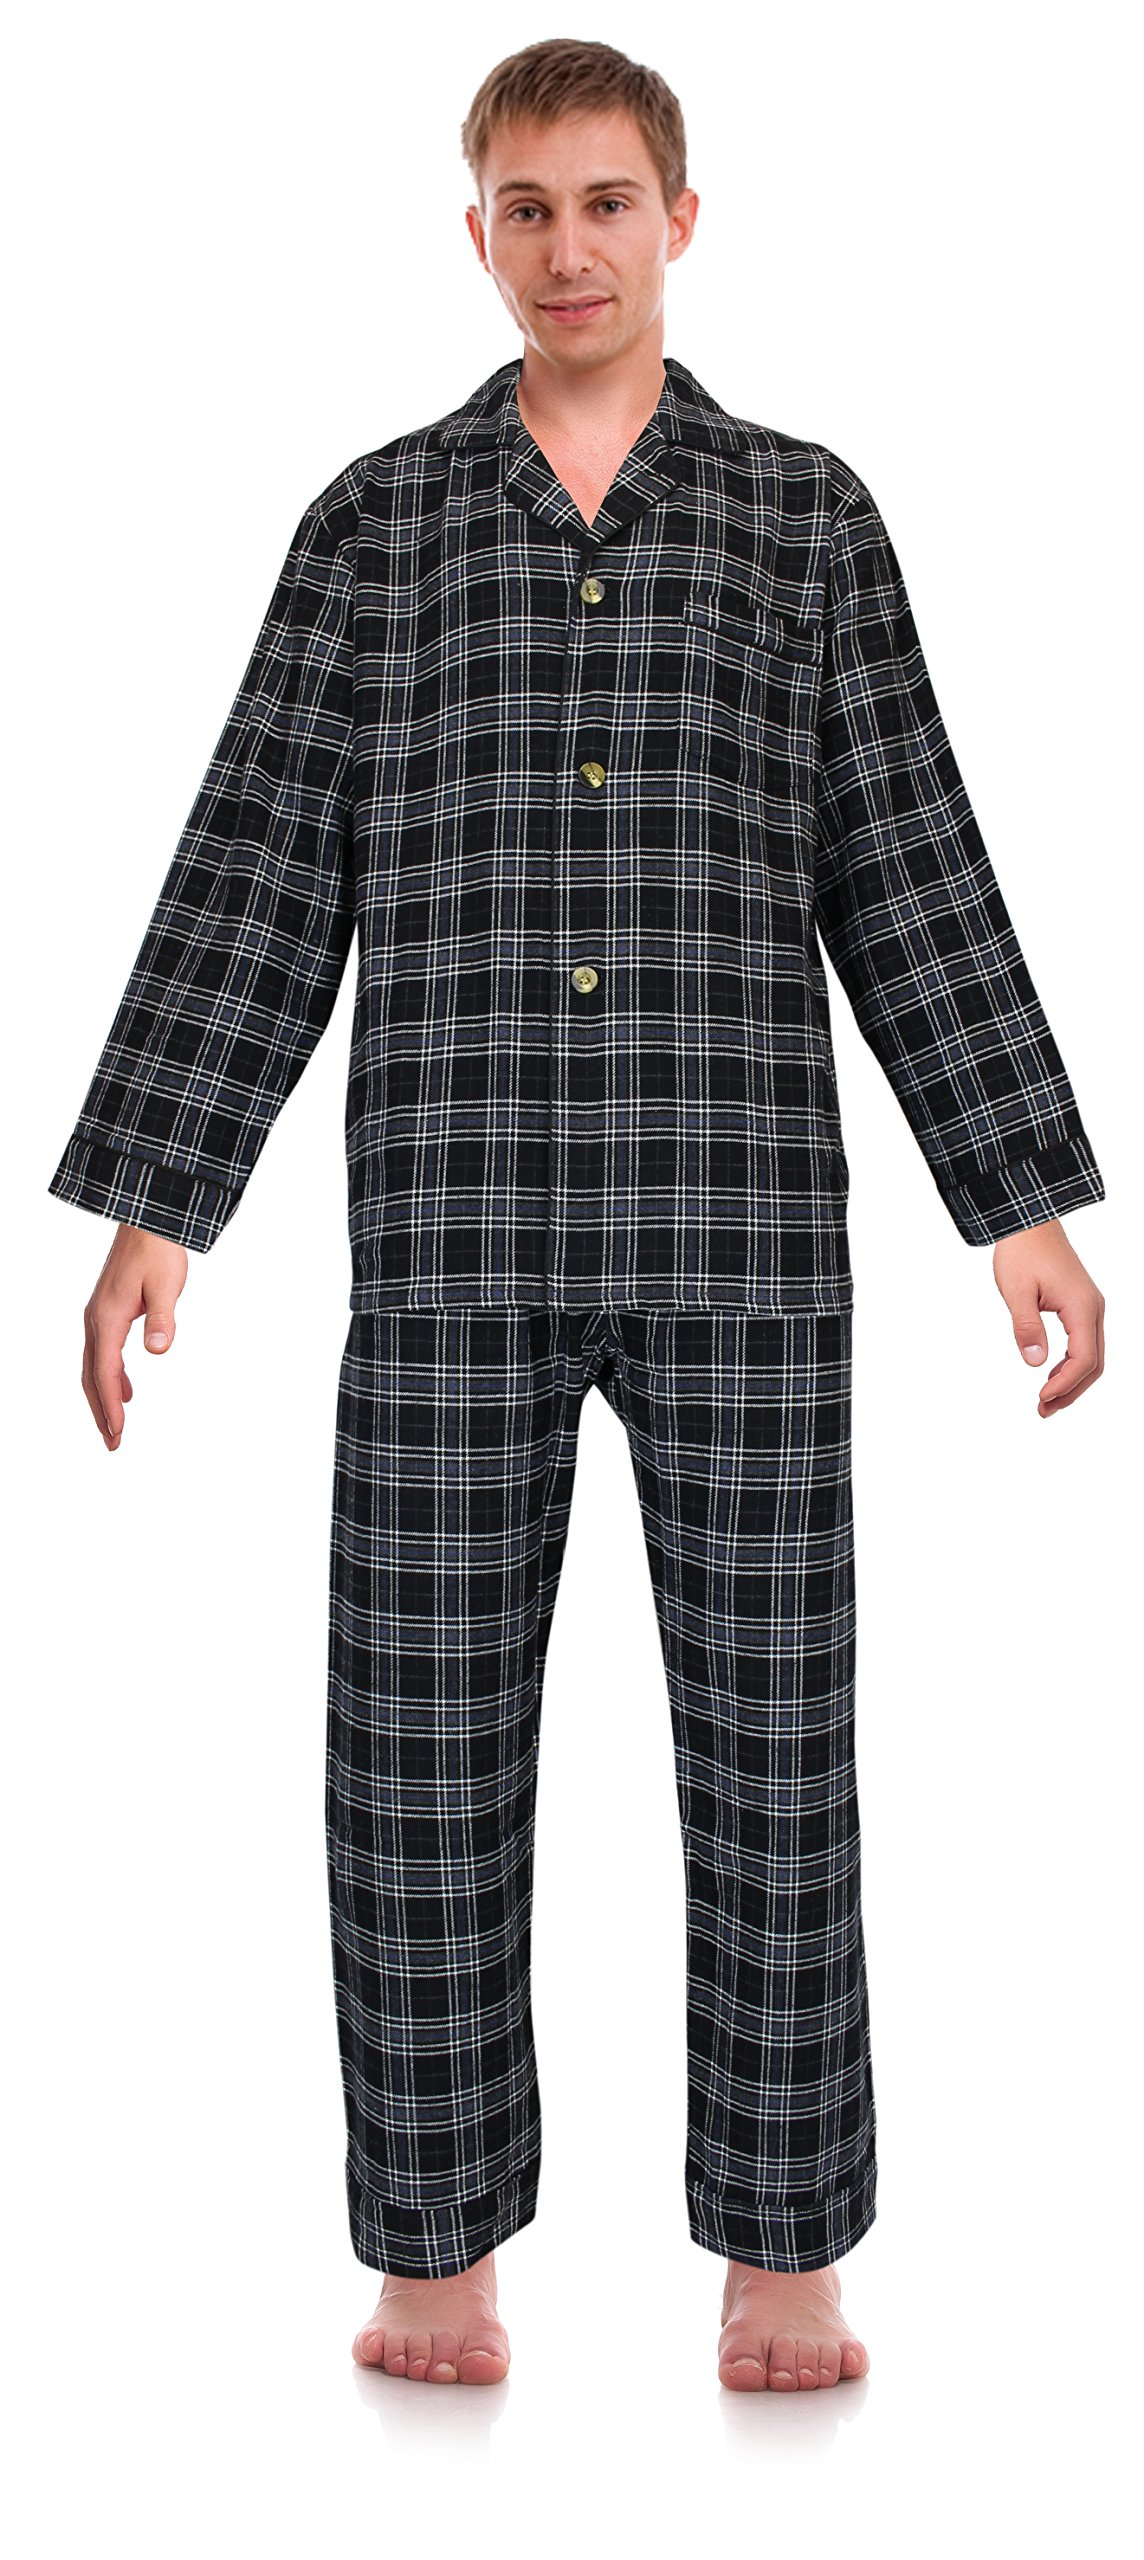 Casual Trends Classical Sleepwear Men's 100% Cotton Flannel Pajama Set, Size X-Large Tall Black